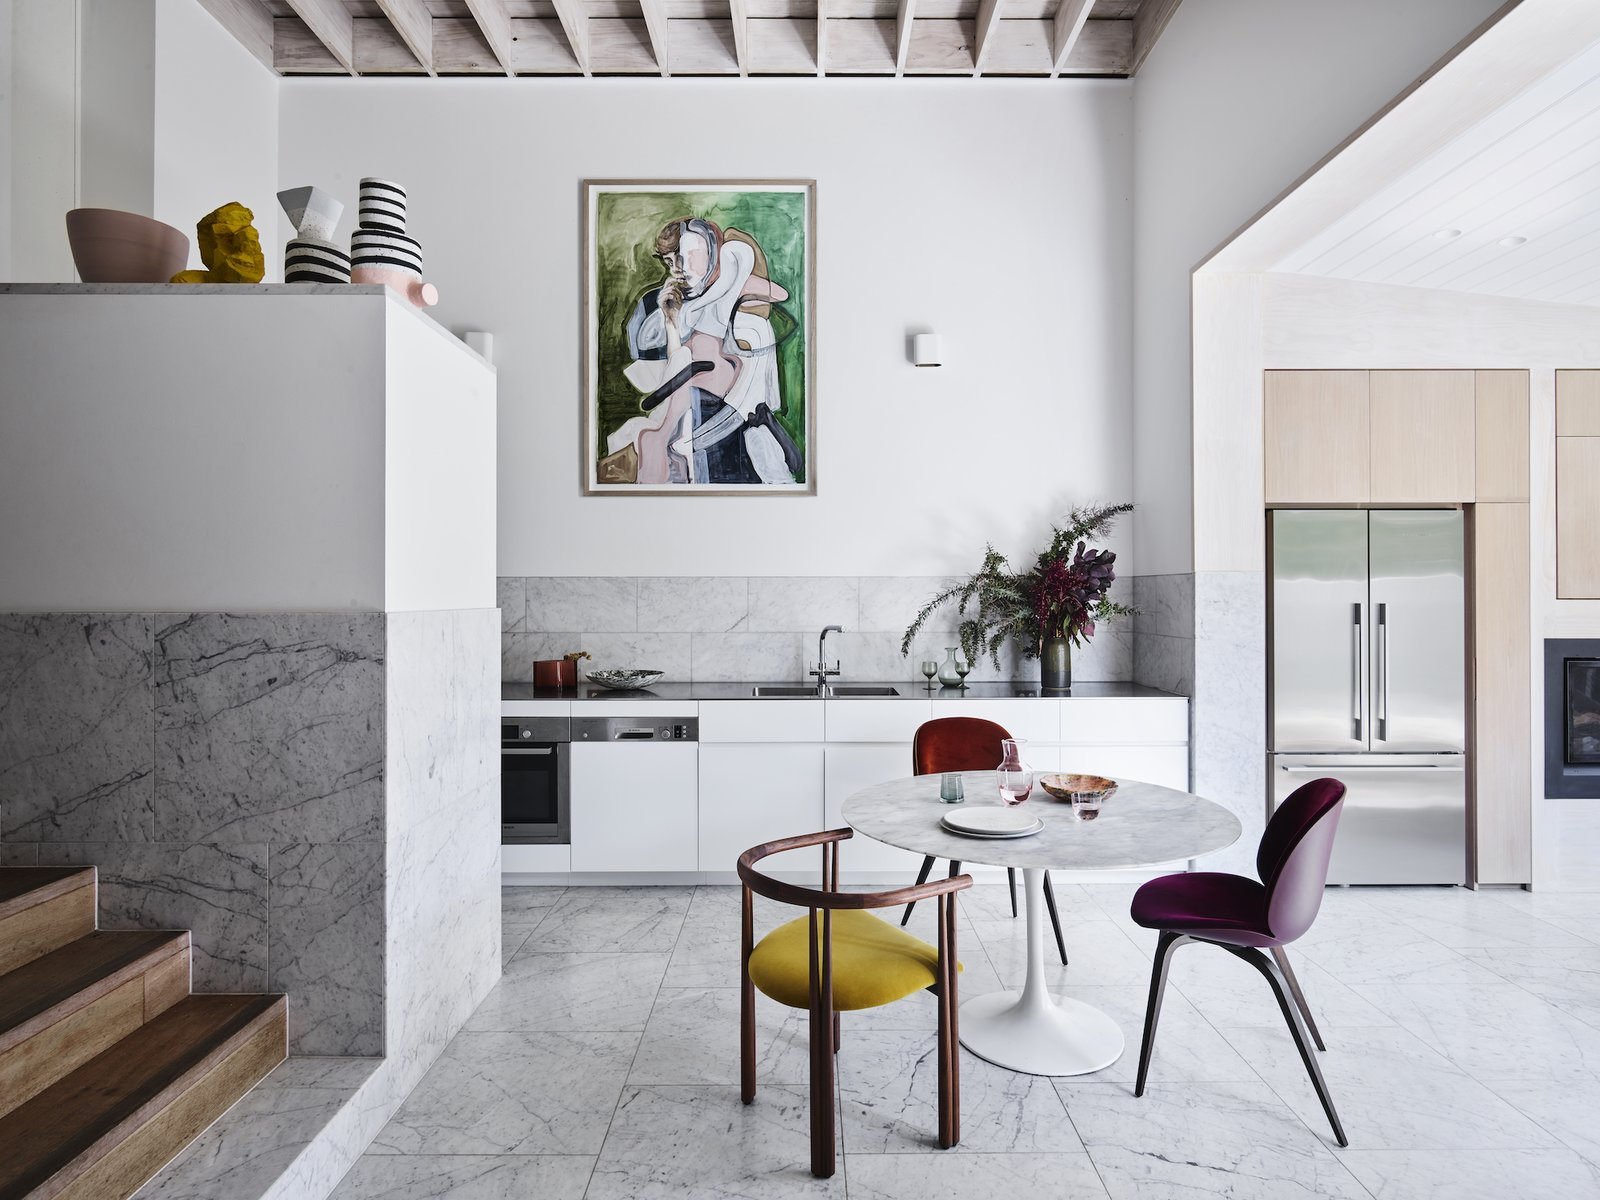 The home's philosophy was inspired by the works of Alvar Aalto and Louis Kahn. The use of locally available and low-cost pine and Carrara stone gives it an almost Scandinavian sensibility, which the couple describe as